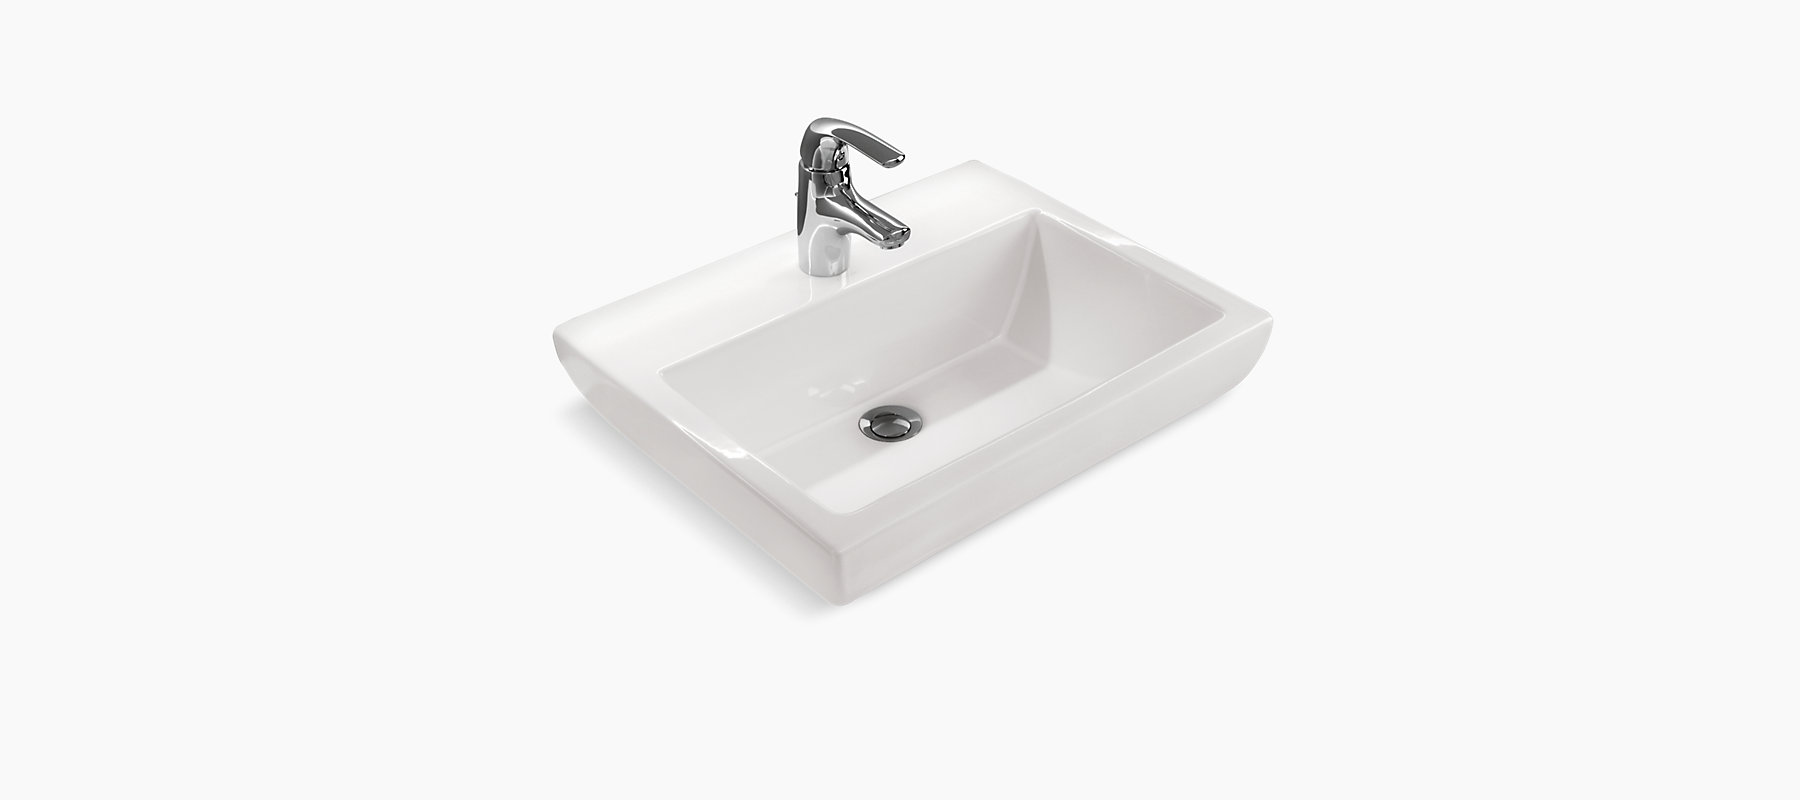 Parliament Semi Recessed Lavatory With Single Faucet Hole